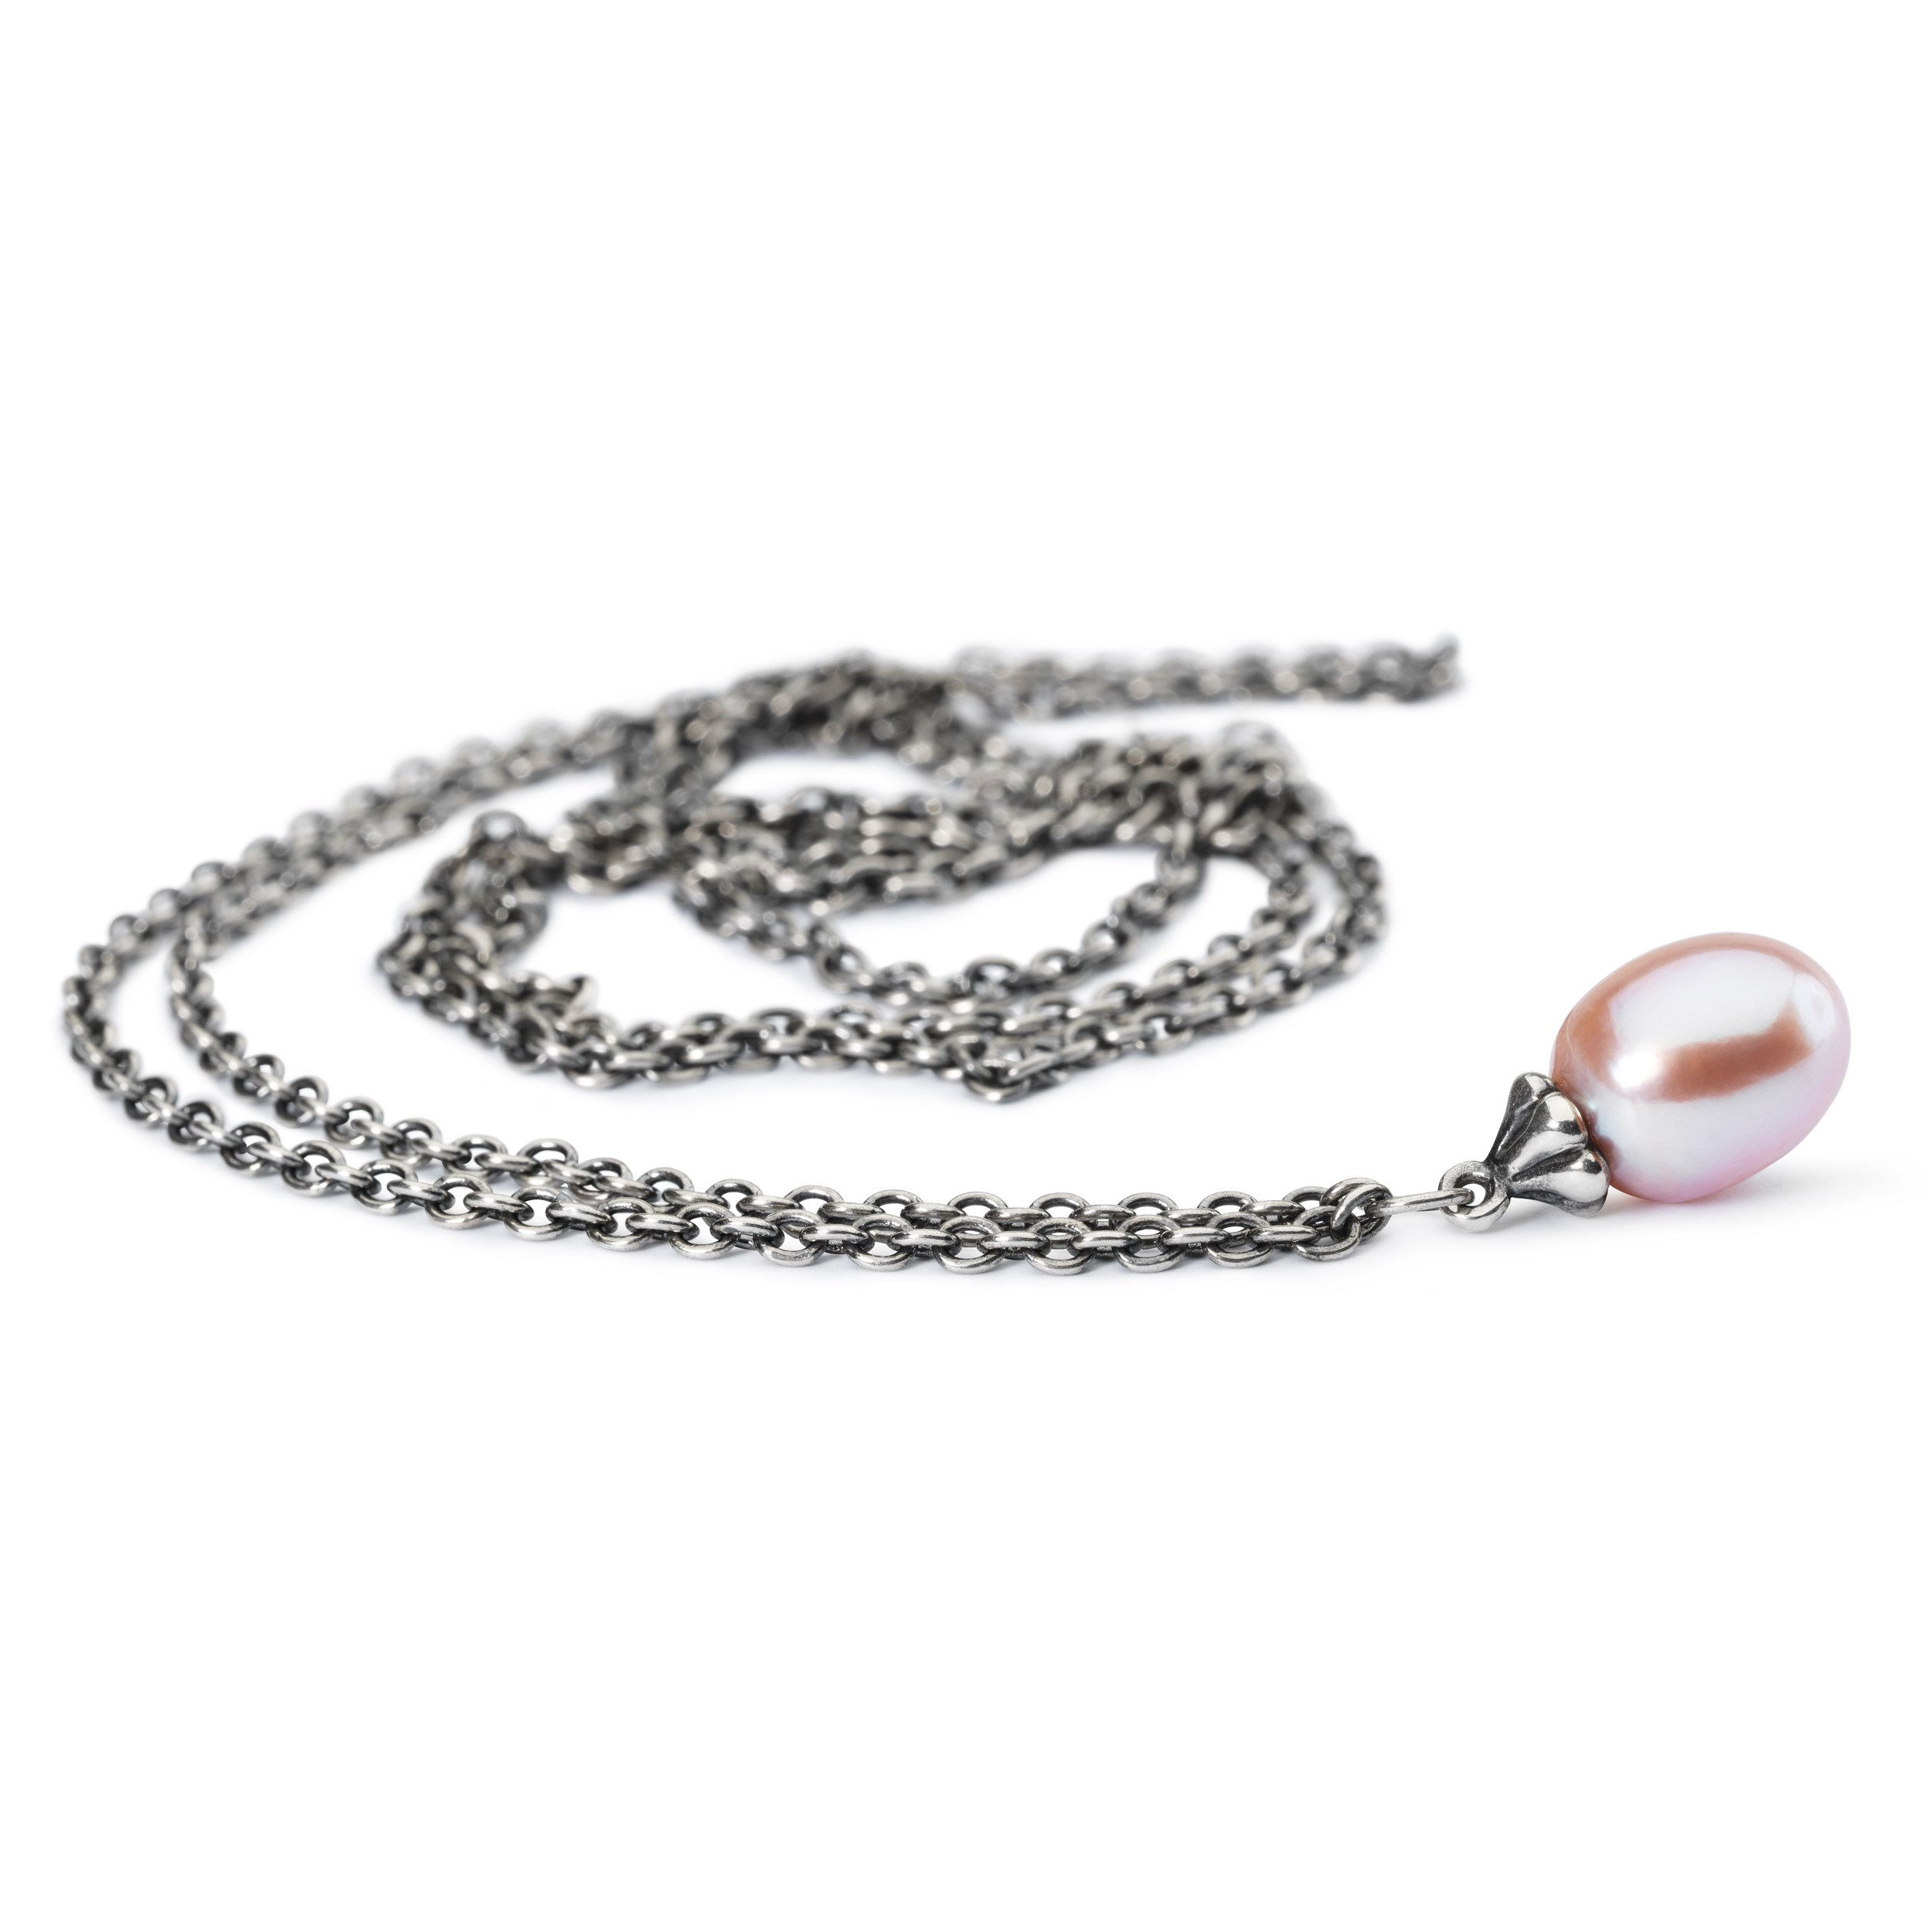 Fantasy Necklace with Rosa Pearl 60 cm / 23.6 in